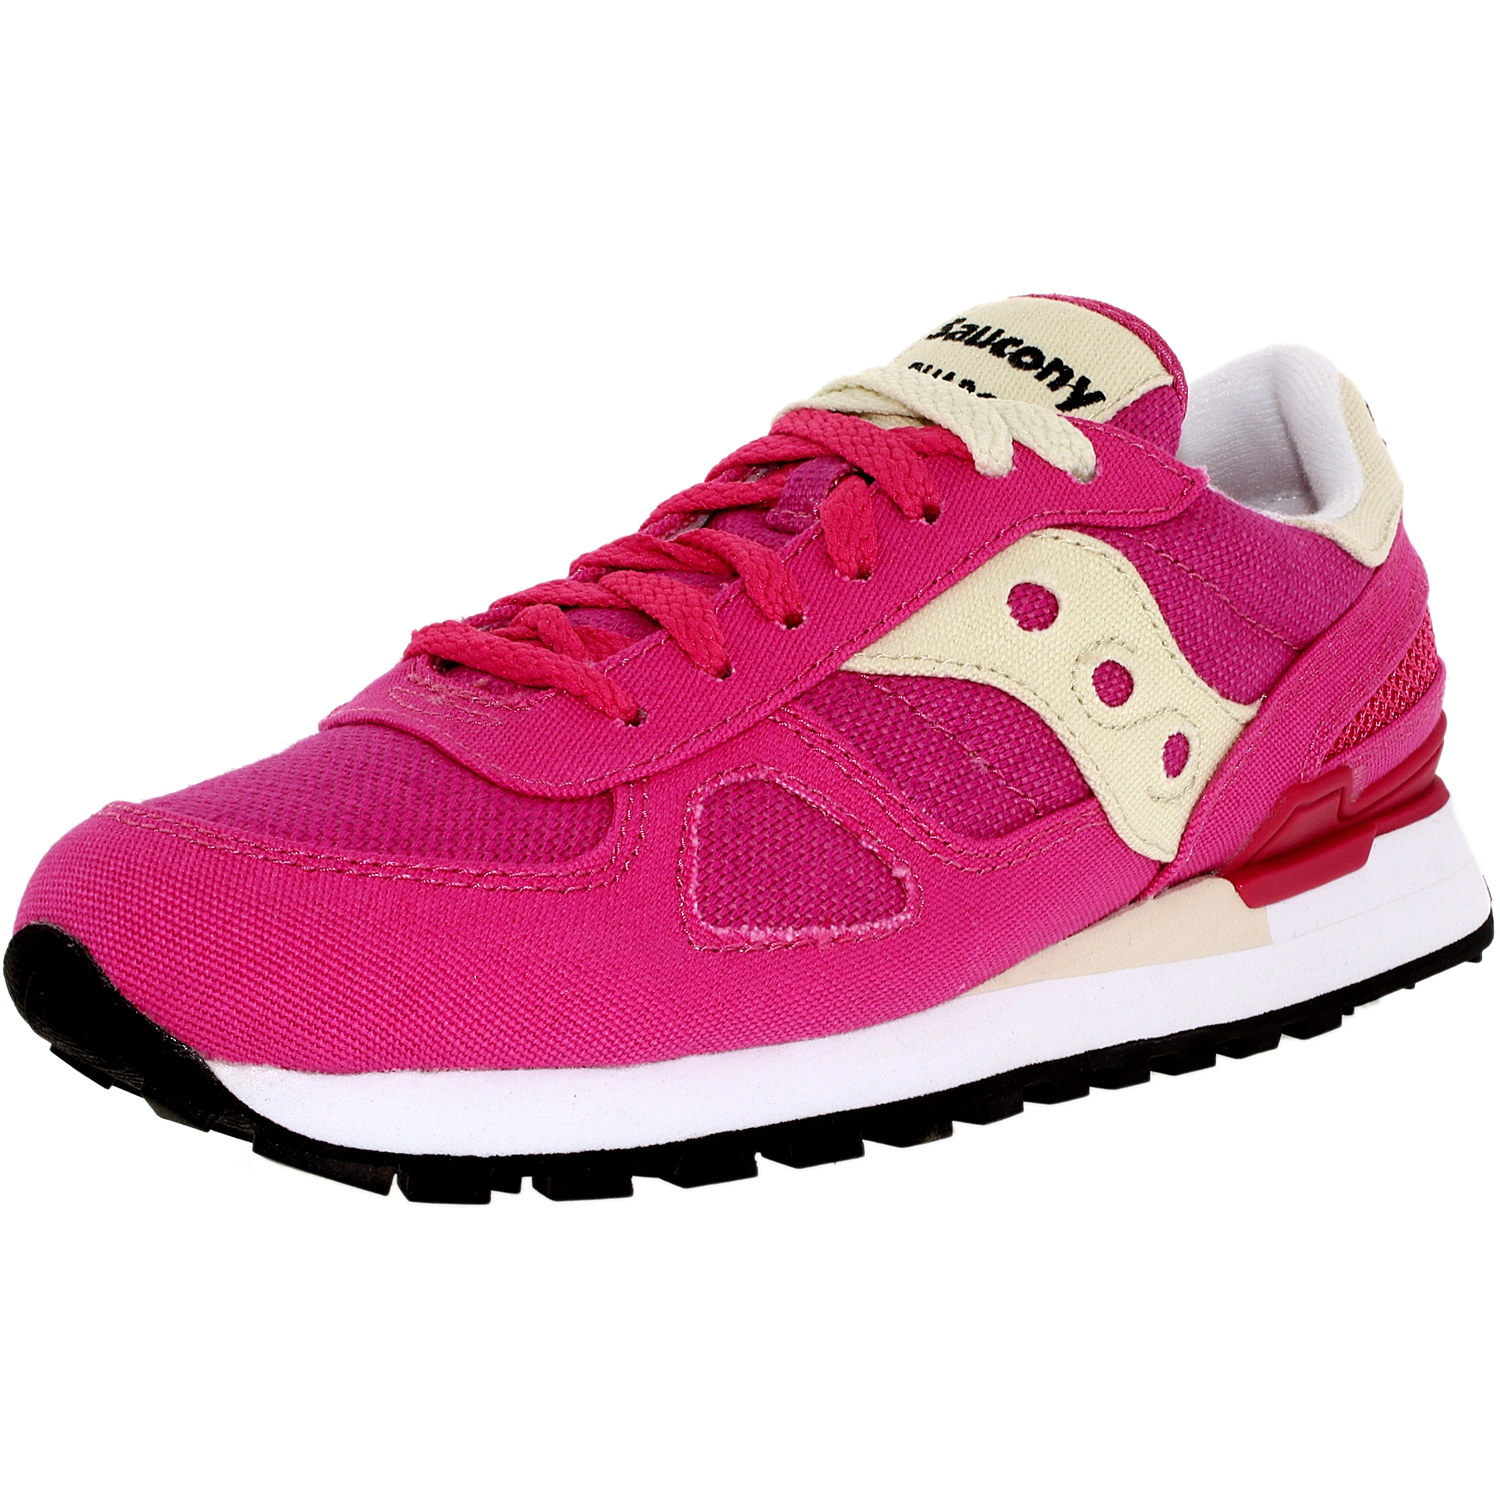 Saucony Women's Shadow Original Pink Ankle-High Fashion Sneaker 5.5M by Saucony